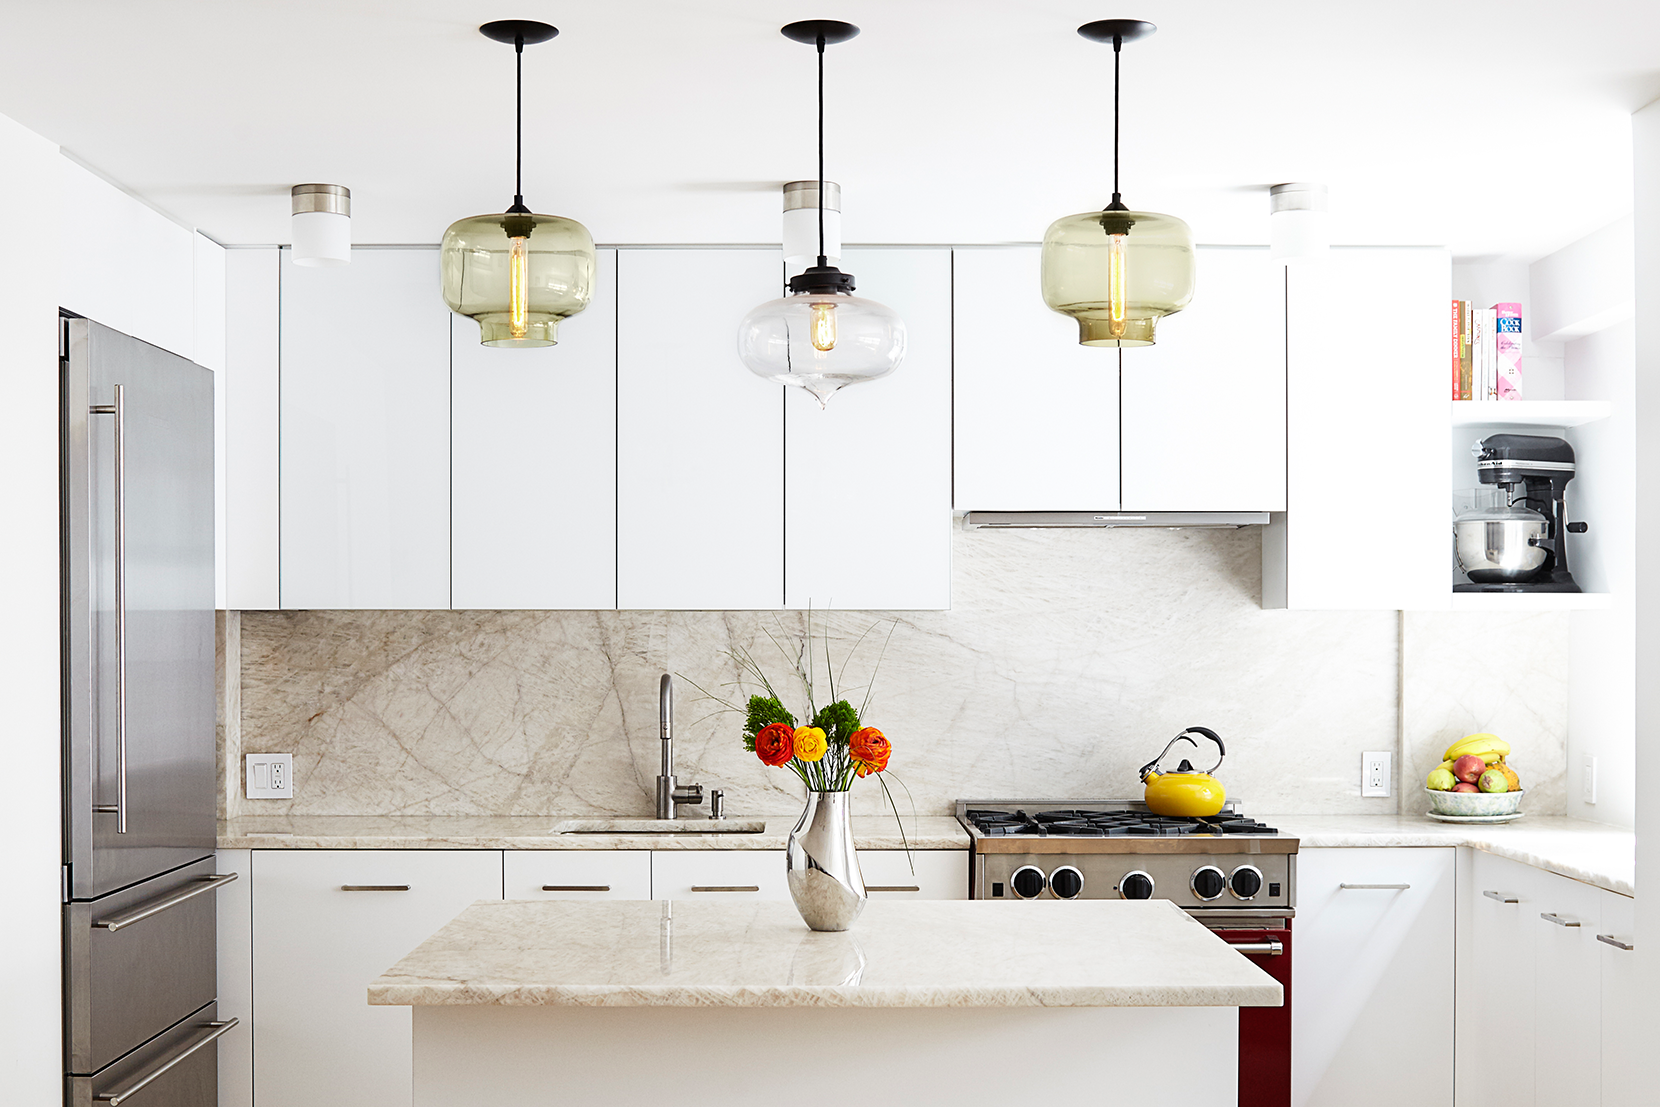 Lighting-Project-Pages_0007s_0013_Multi-Pendant-Kitchen-Island-Pendant-Lighting.png